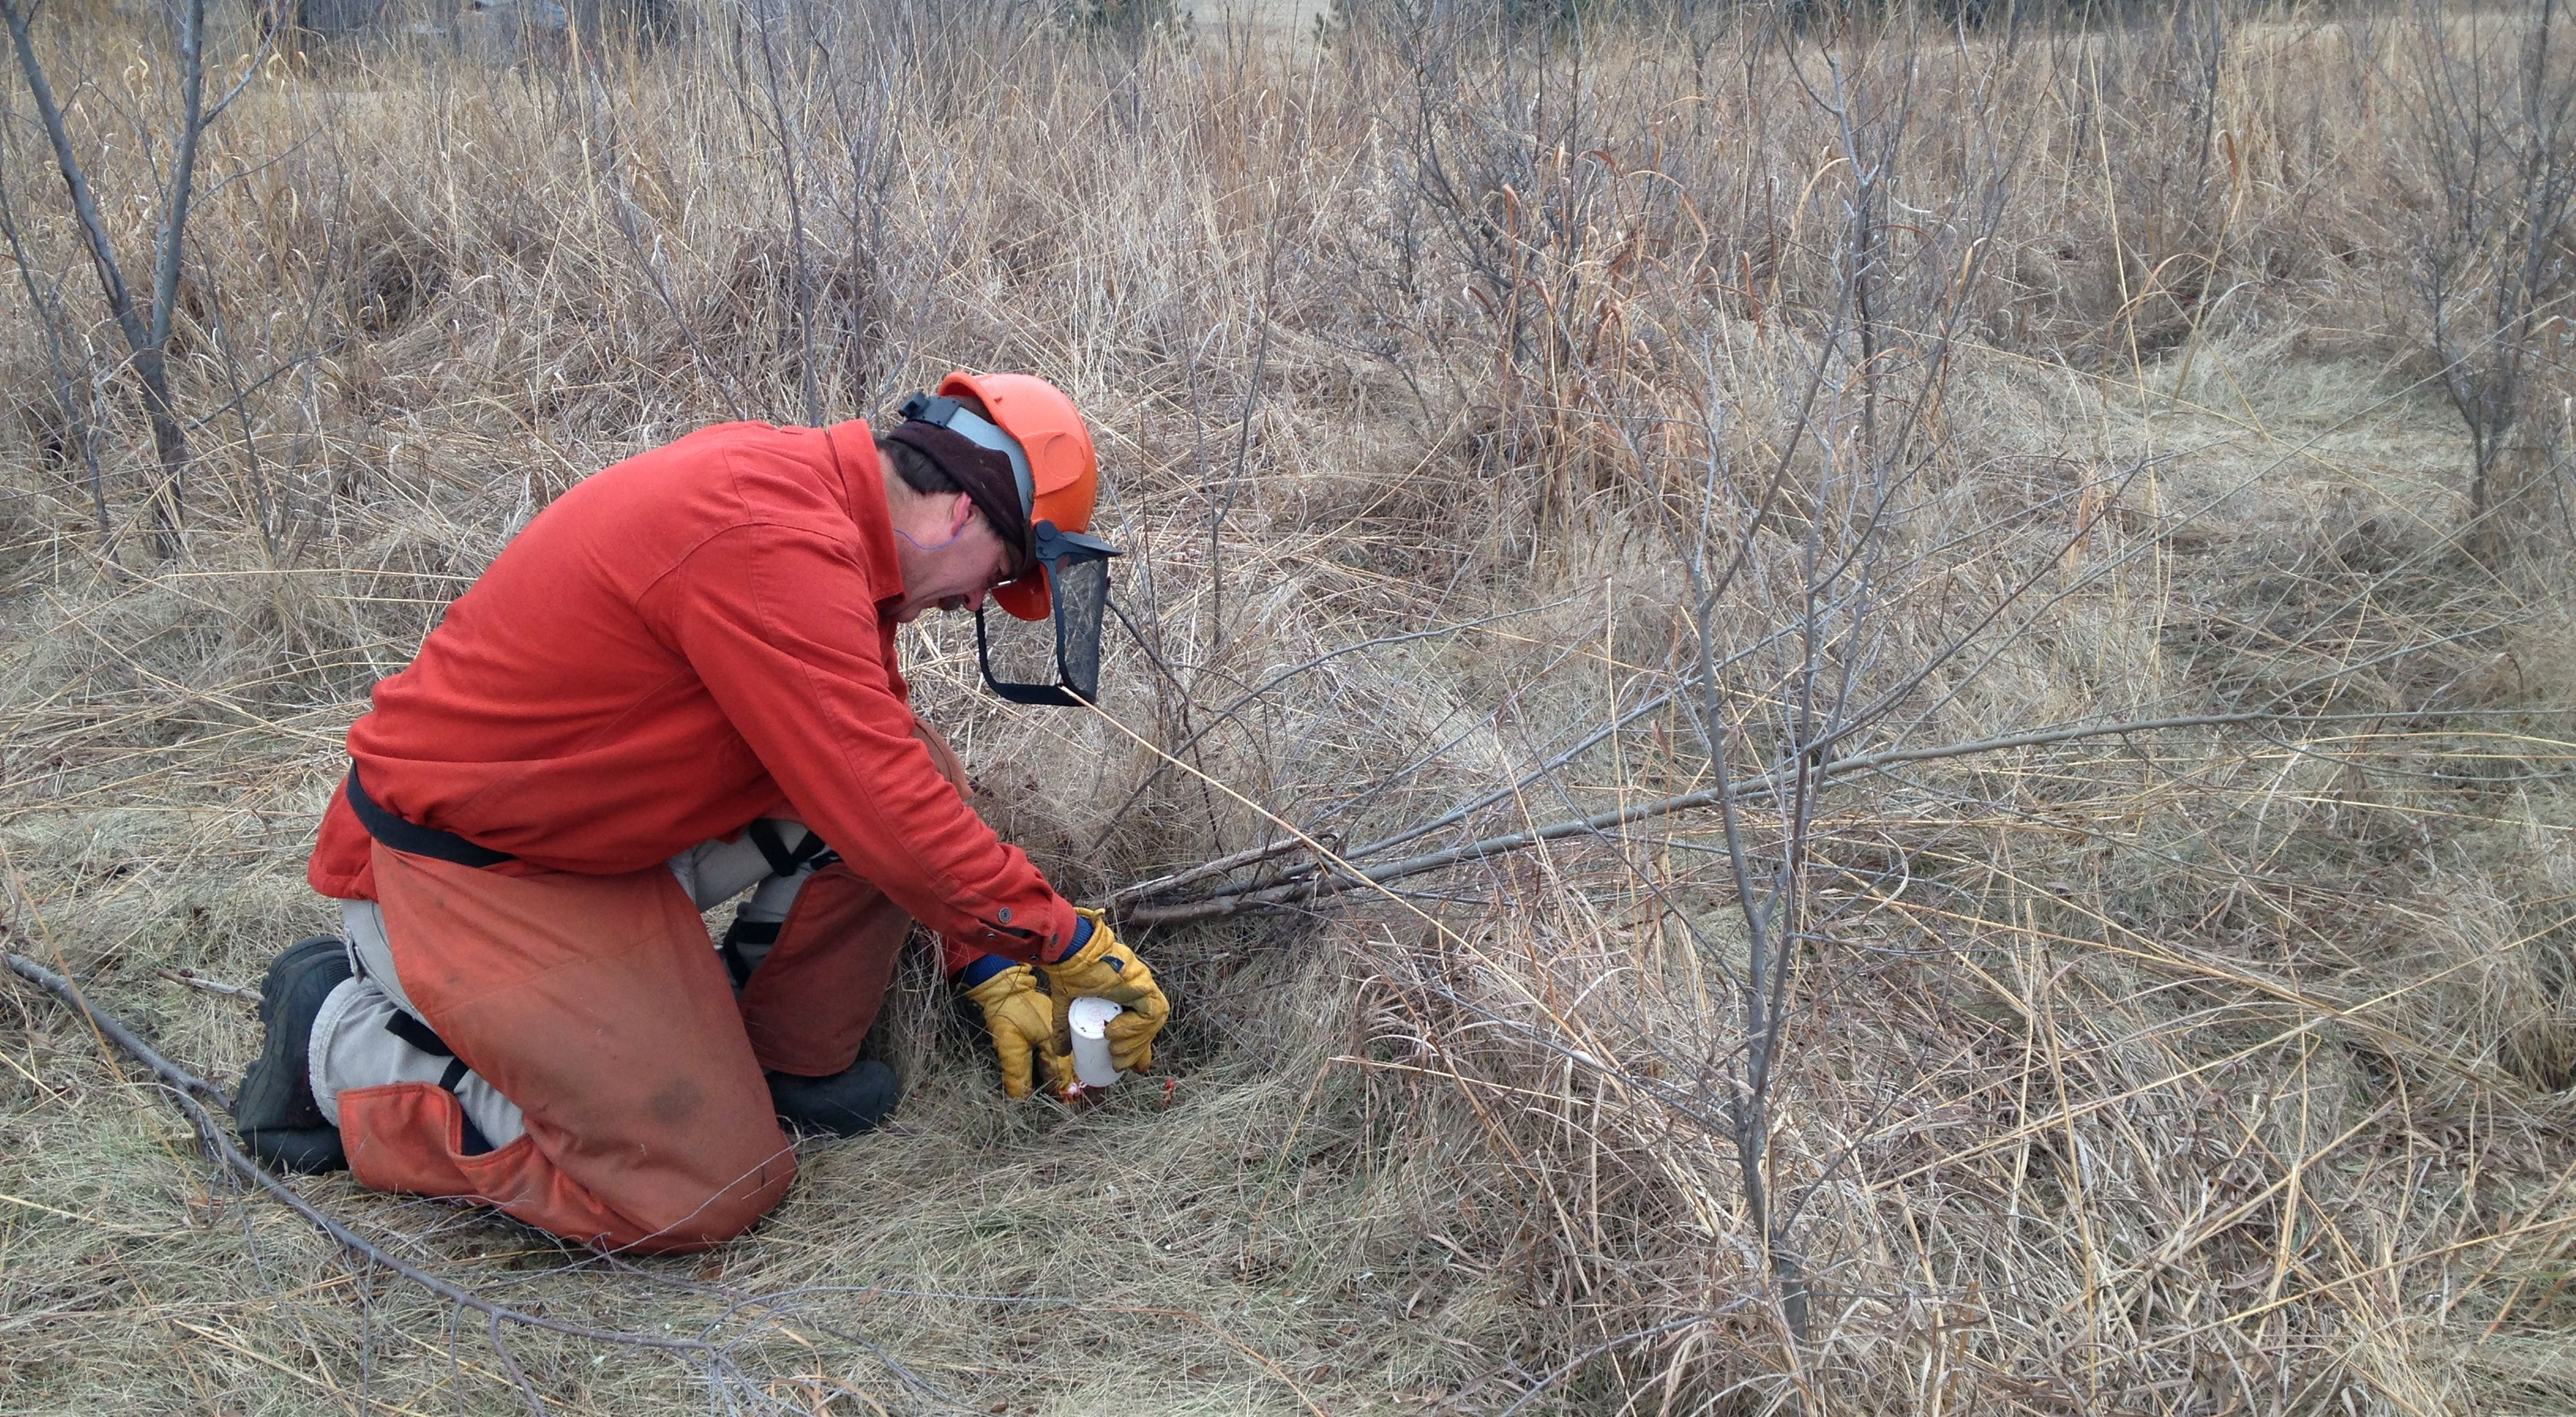 A volunteer in orange chaps applies herbicide to a small invasive tree in a prairie preserve.